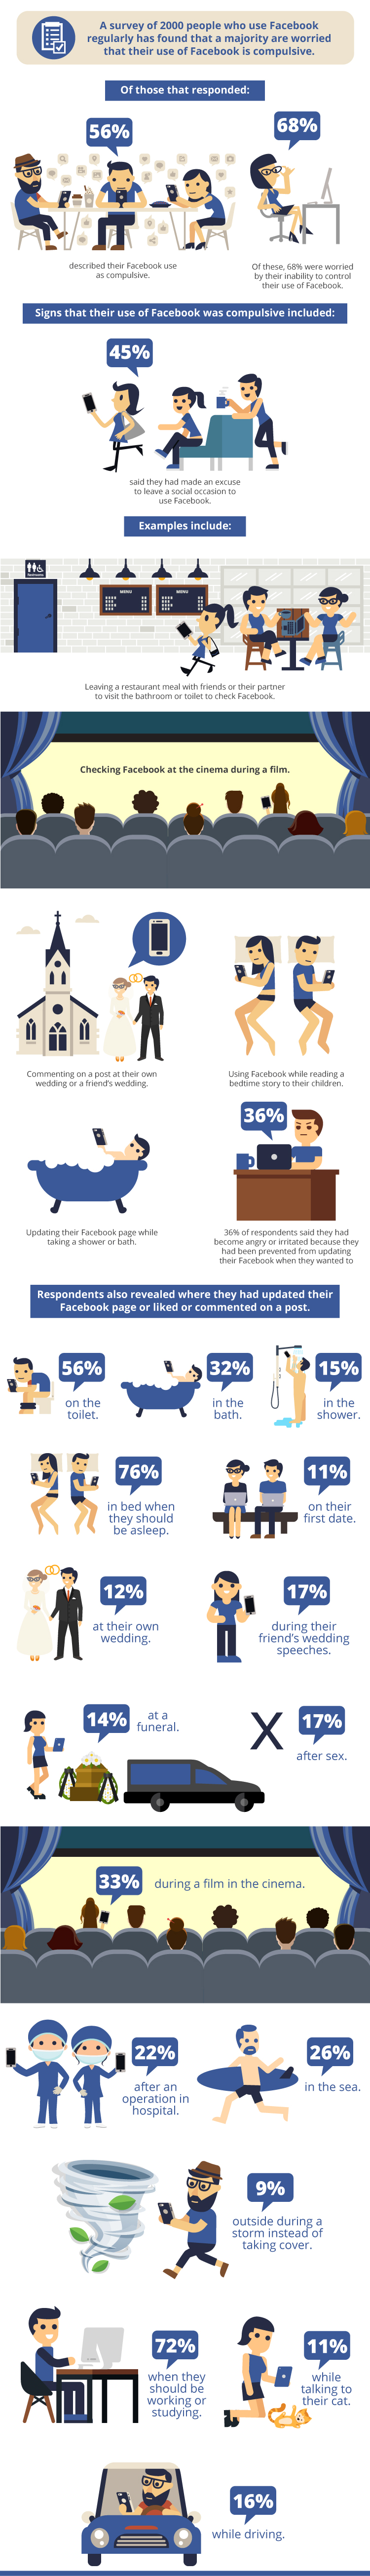 Facebook-and-its-Usage